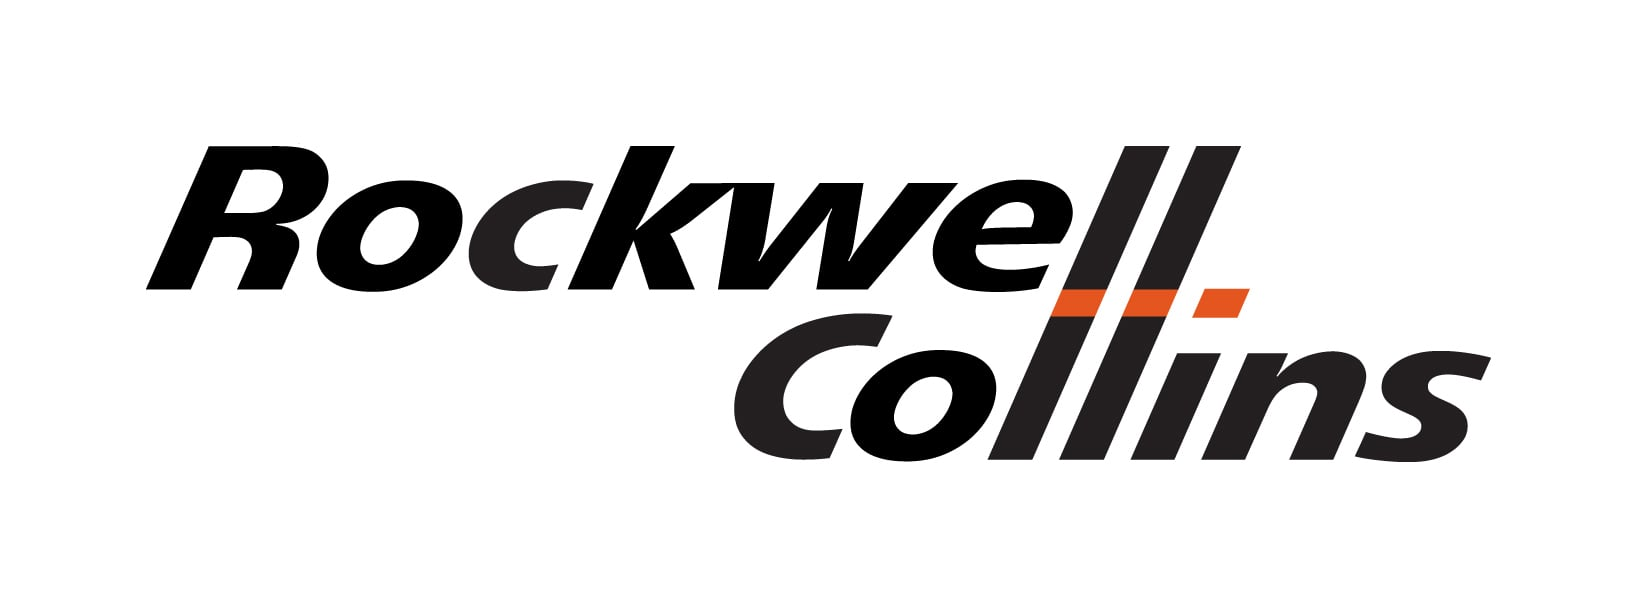 rockwell_collins.jpg